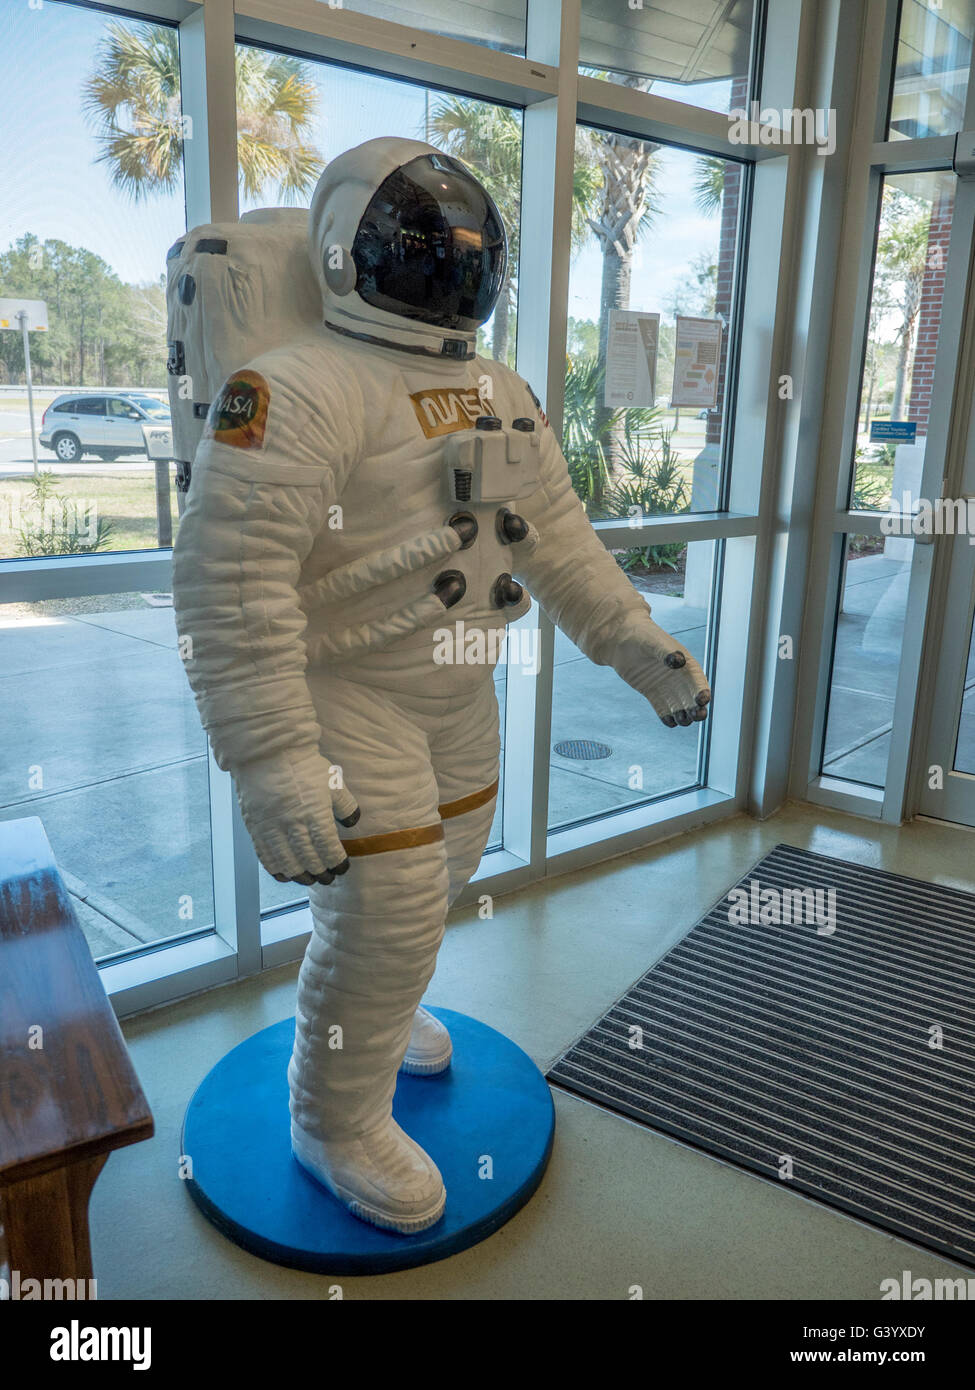 A Life Size NASA Spaceman Astronaut Statue At The Florida State Welcome Center On Interstate 75 South - Stock Image